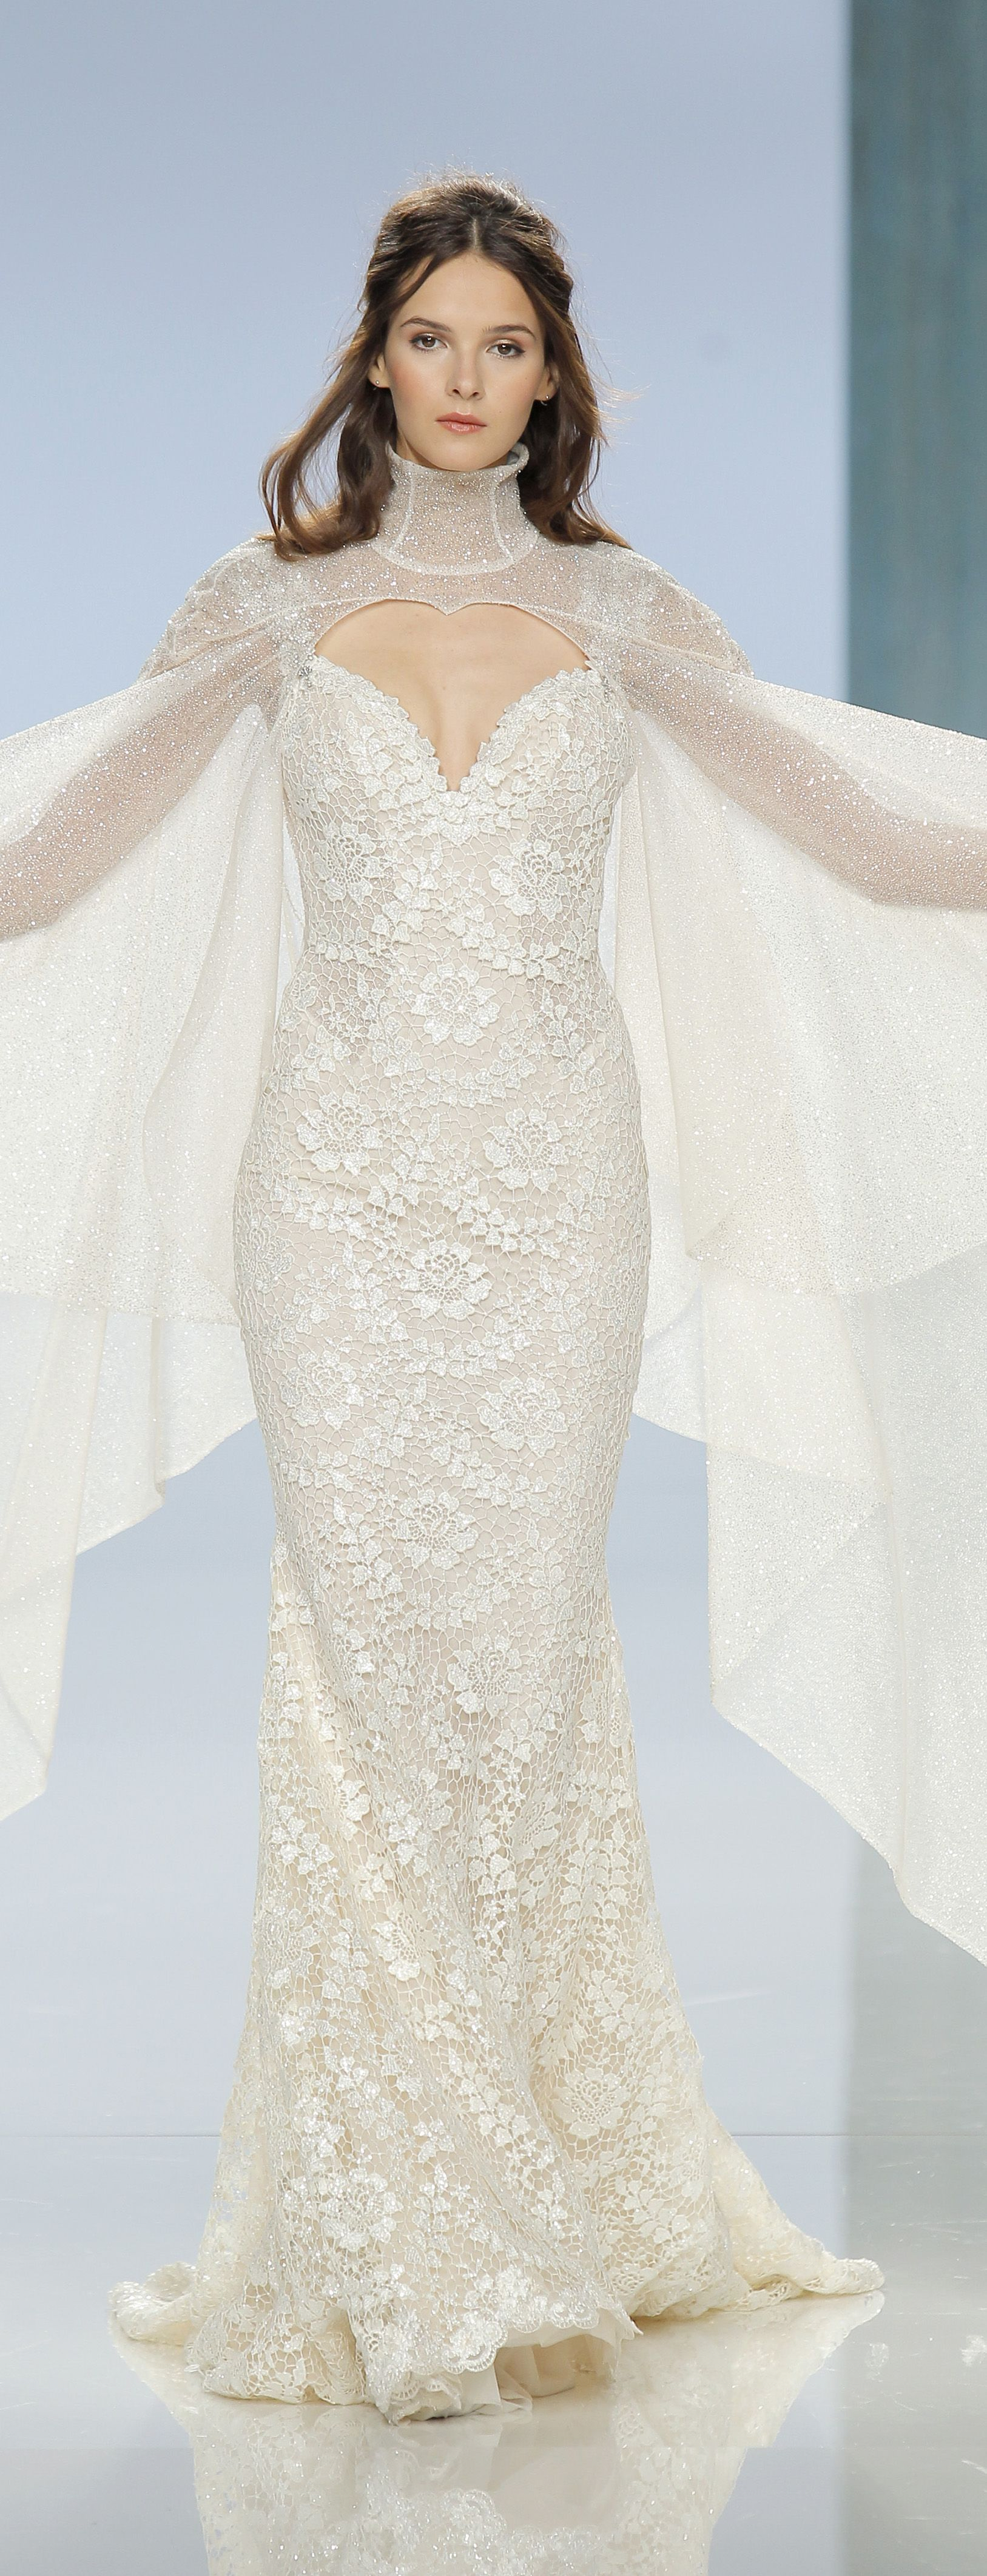 The rayne gown and sterling cape a mermaid column gown with a sheer